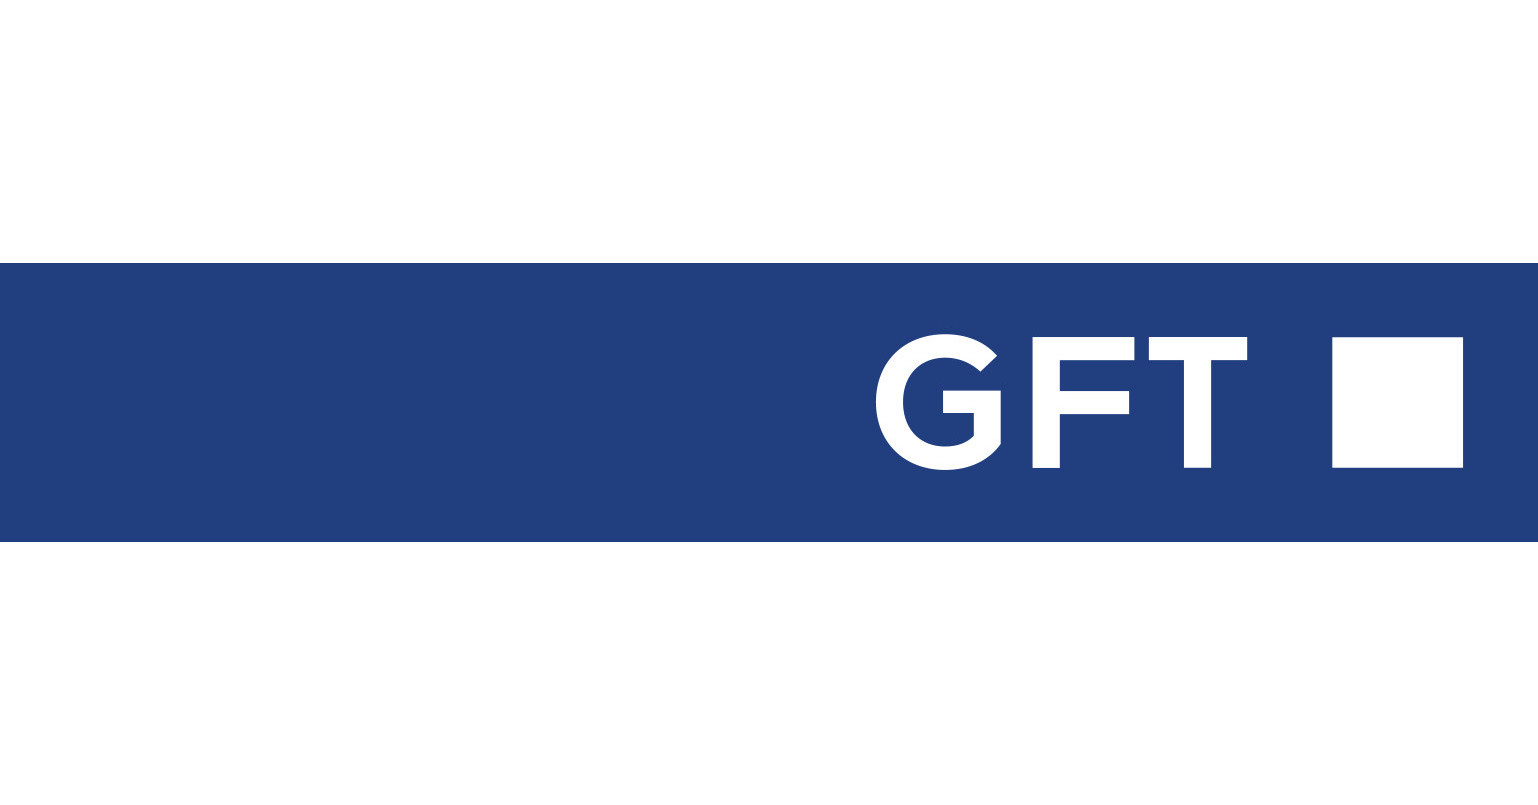 GFT adds Security and Application Development specializations to Google Cloud technology accreditation